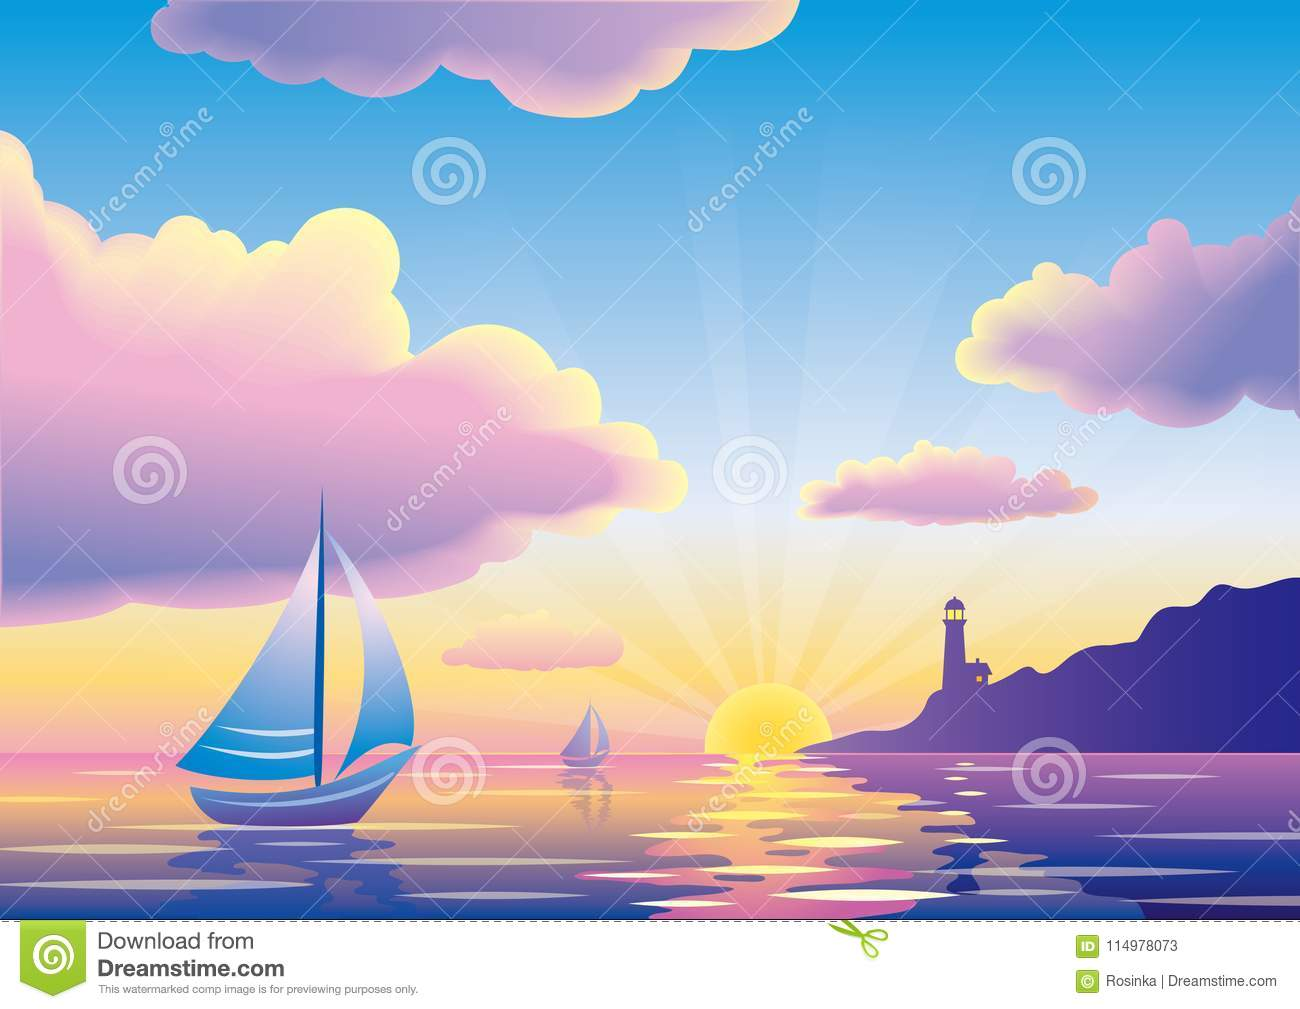 Vector sunset or sunrise seascape with sailboat and lighthouse